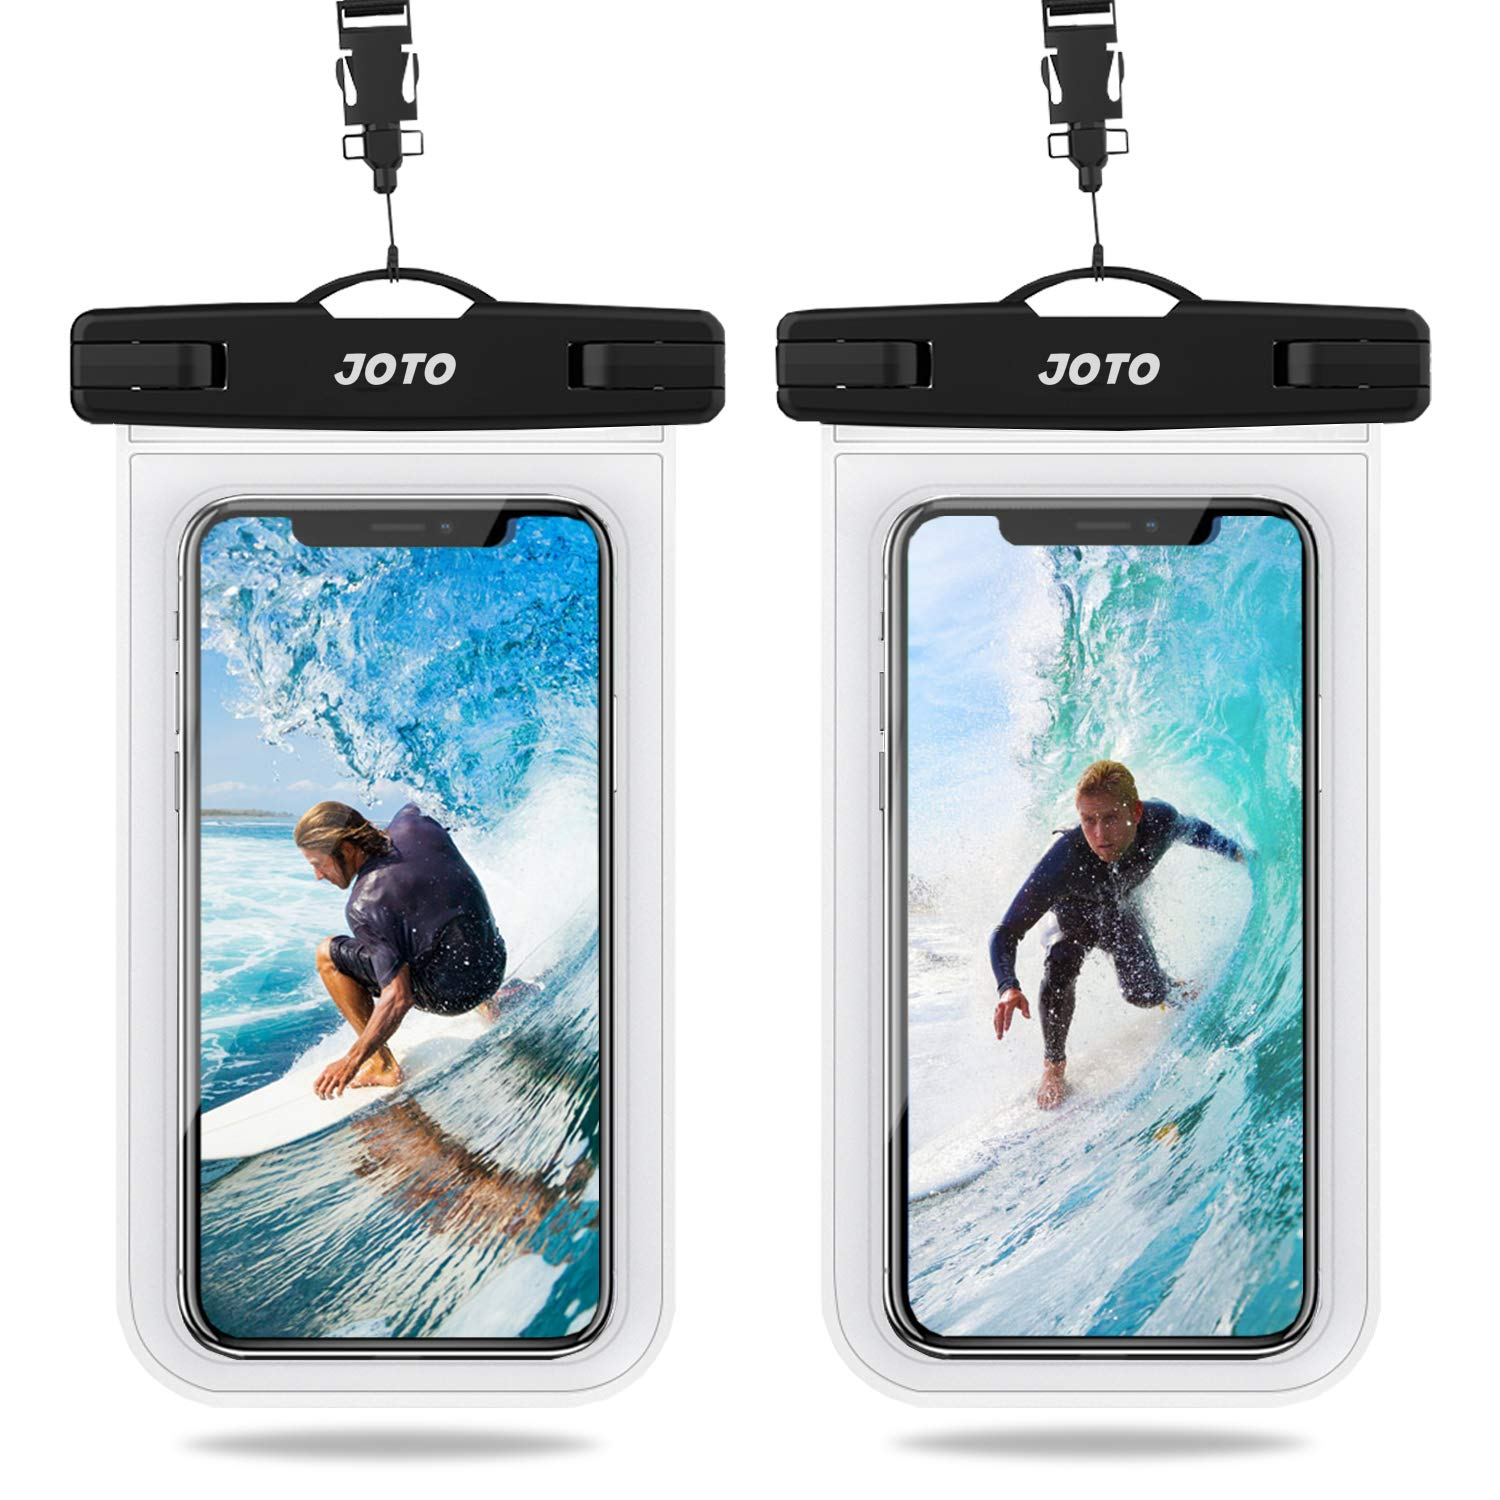 JOTO Universal Waterproof Case, IPX8 Cellphone Dry Bag Pouch Underwater Case for iPhone Xs Max XR XS X 8 7 6S Plus, Galaxy S10+ S10 S9 S8+/ Note 10 10+ 5G 9 8, Pixel 3a 3 XL up to 6.8'' -2 Pack, Clear by JOTO